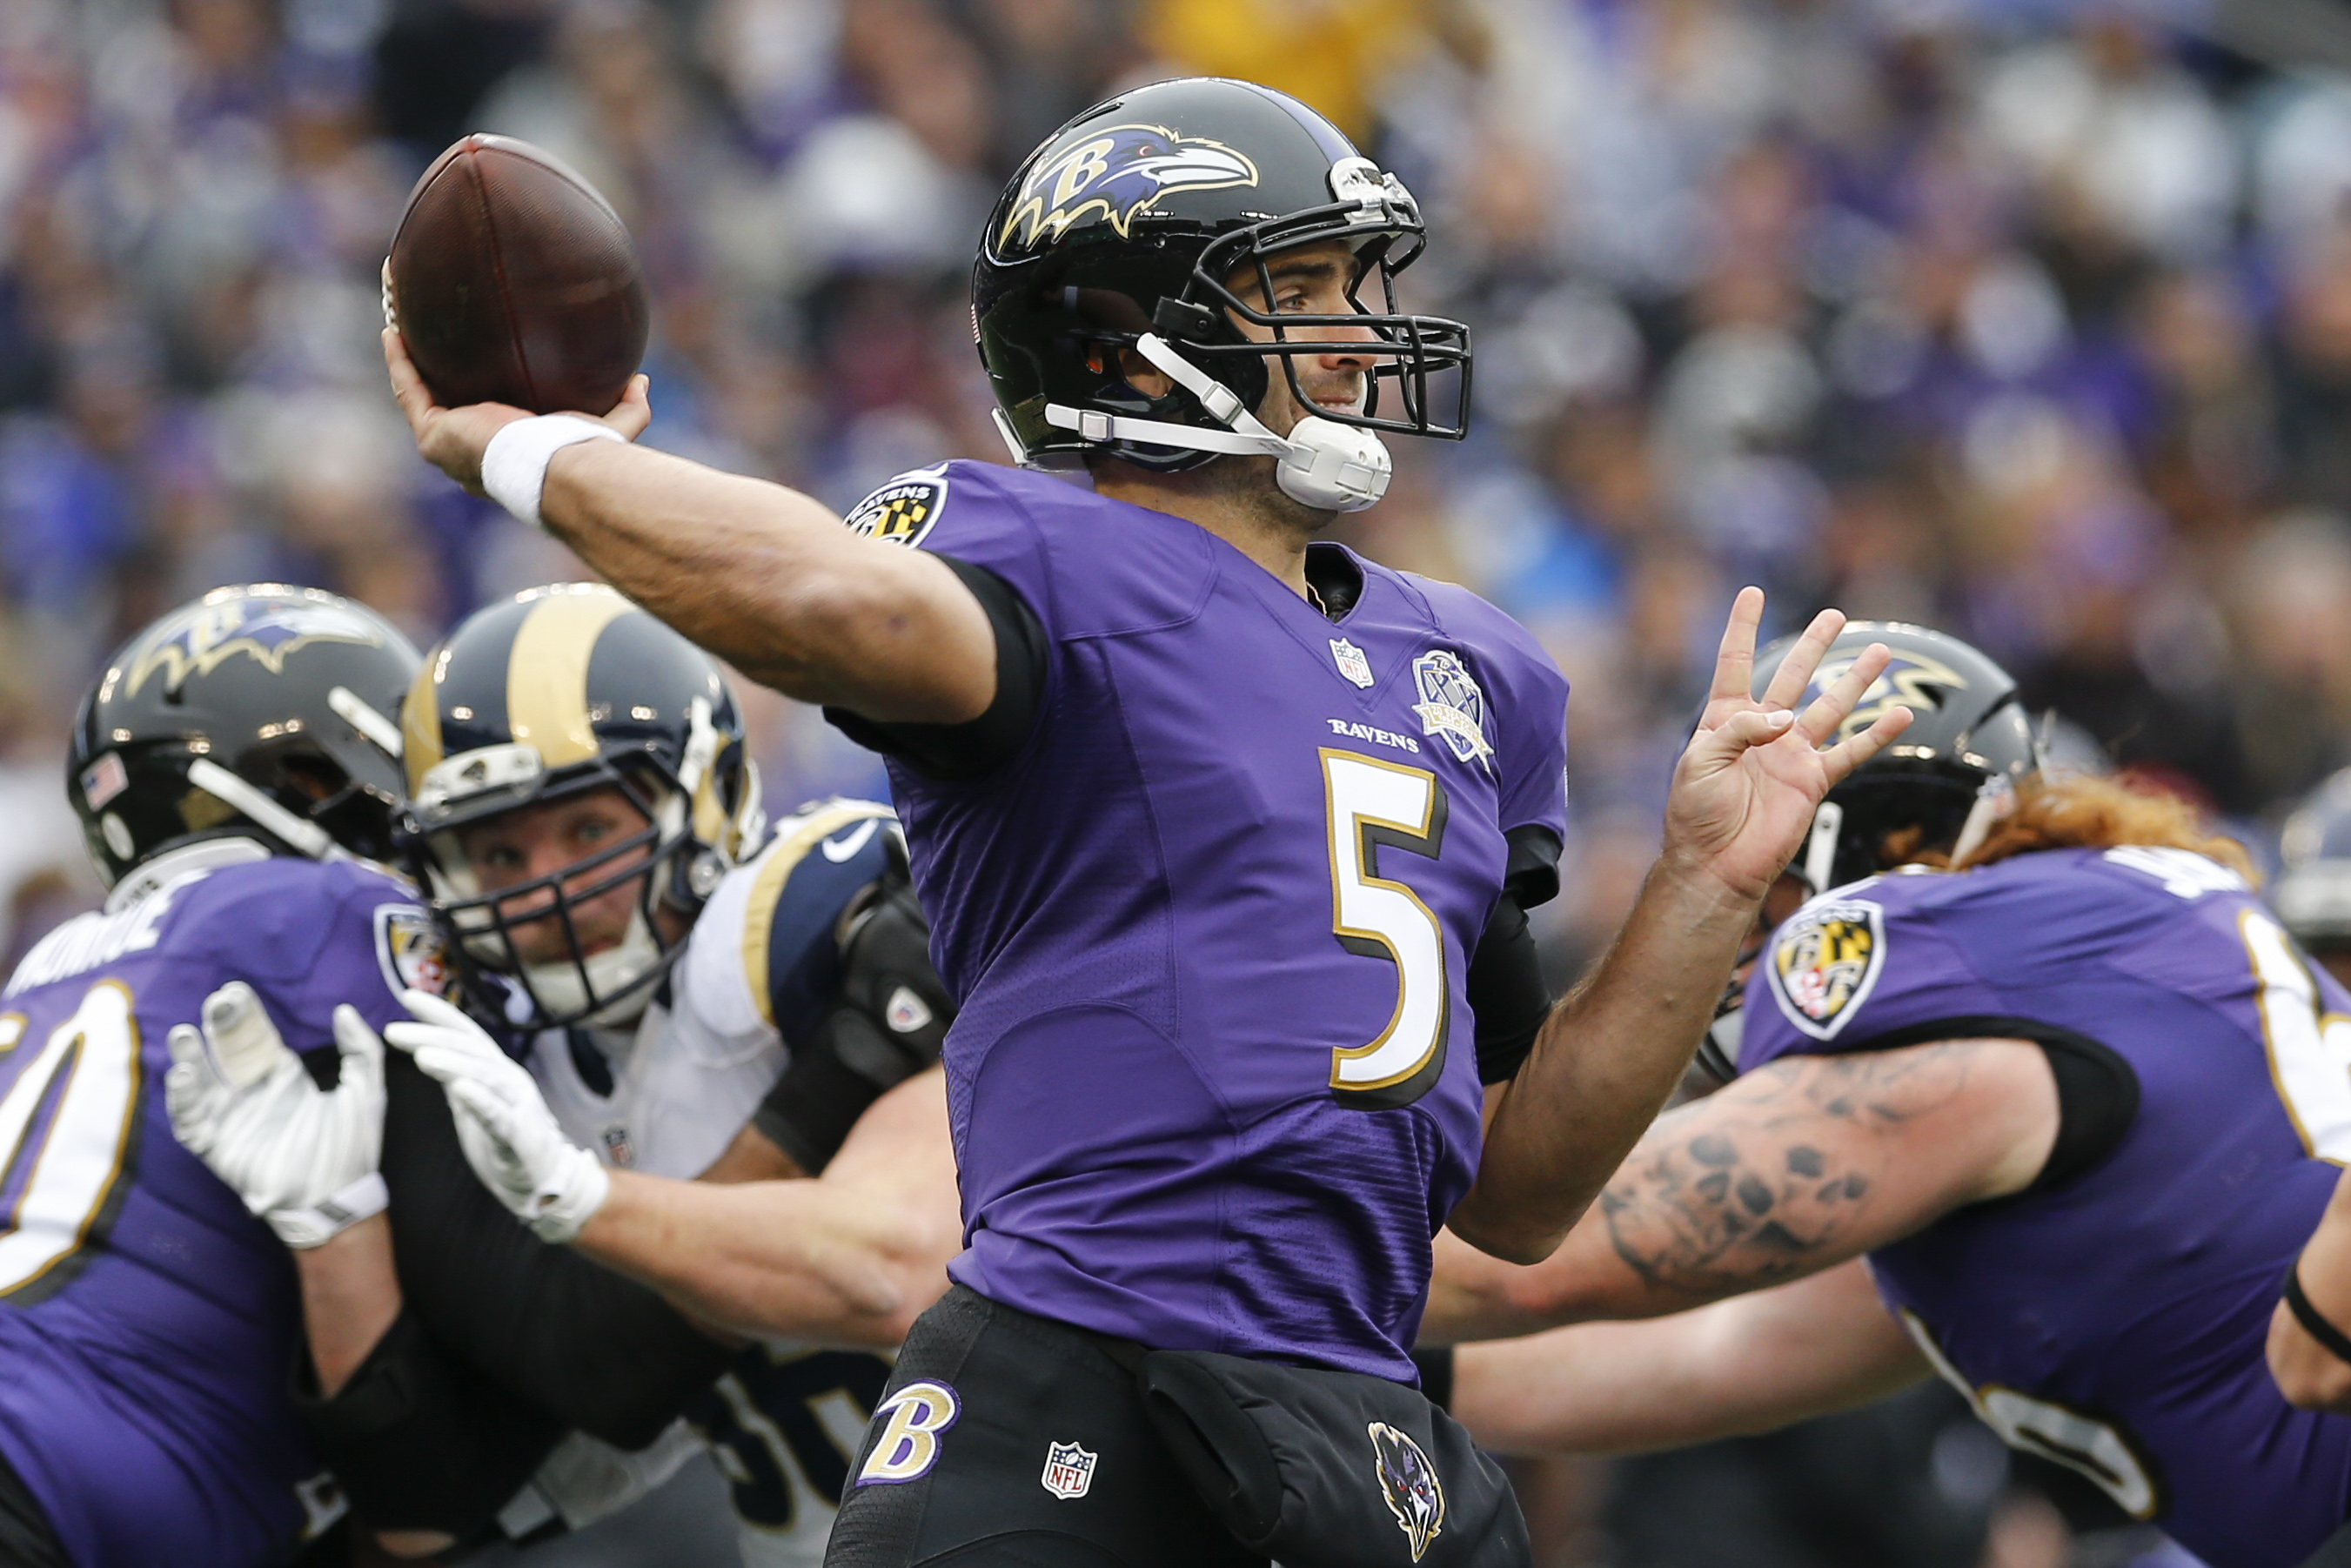 Baltimore Ravens quarterback Joe Flacco (5) passes the ball during the first half of an NFL football game against the St. Louis Rams in Baltimore, Sunday, Nov. 22, 2015. (AP Photo/Patrick Semansky)